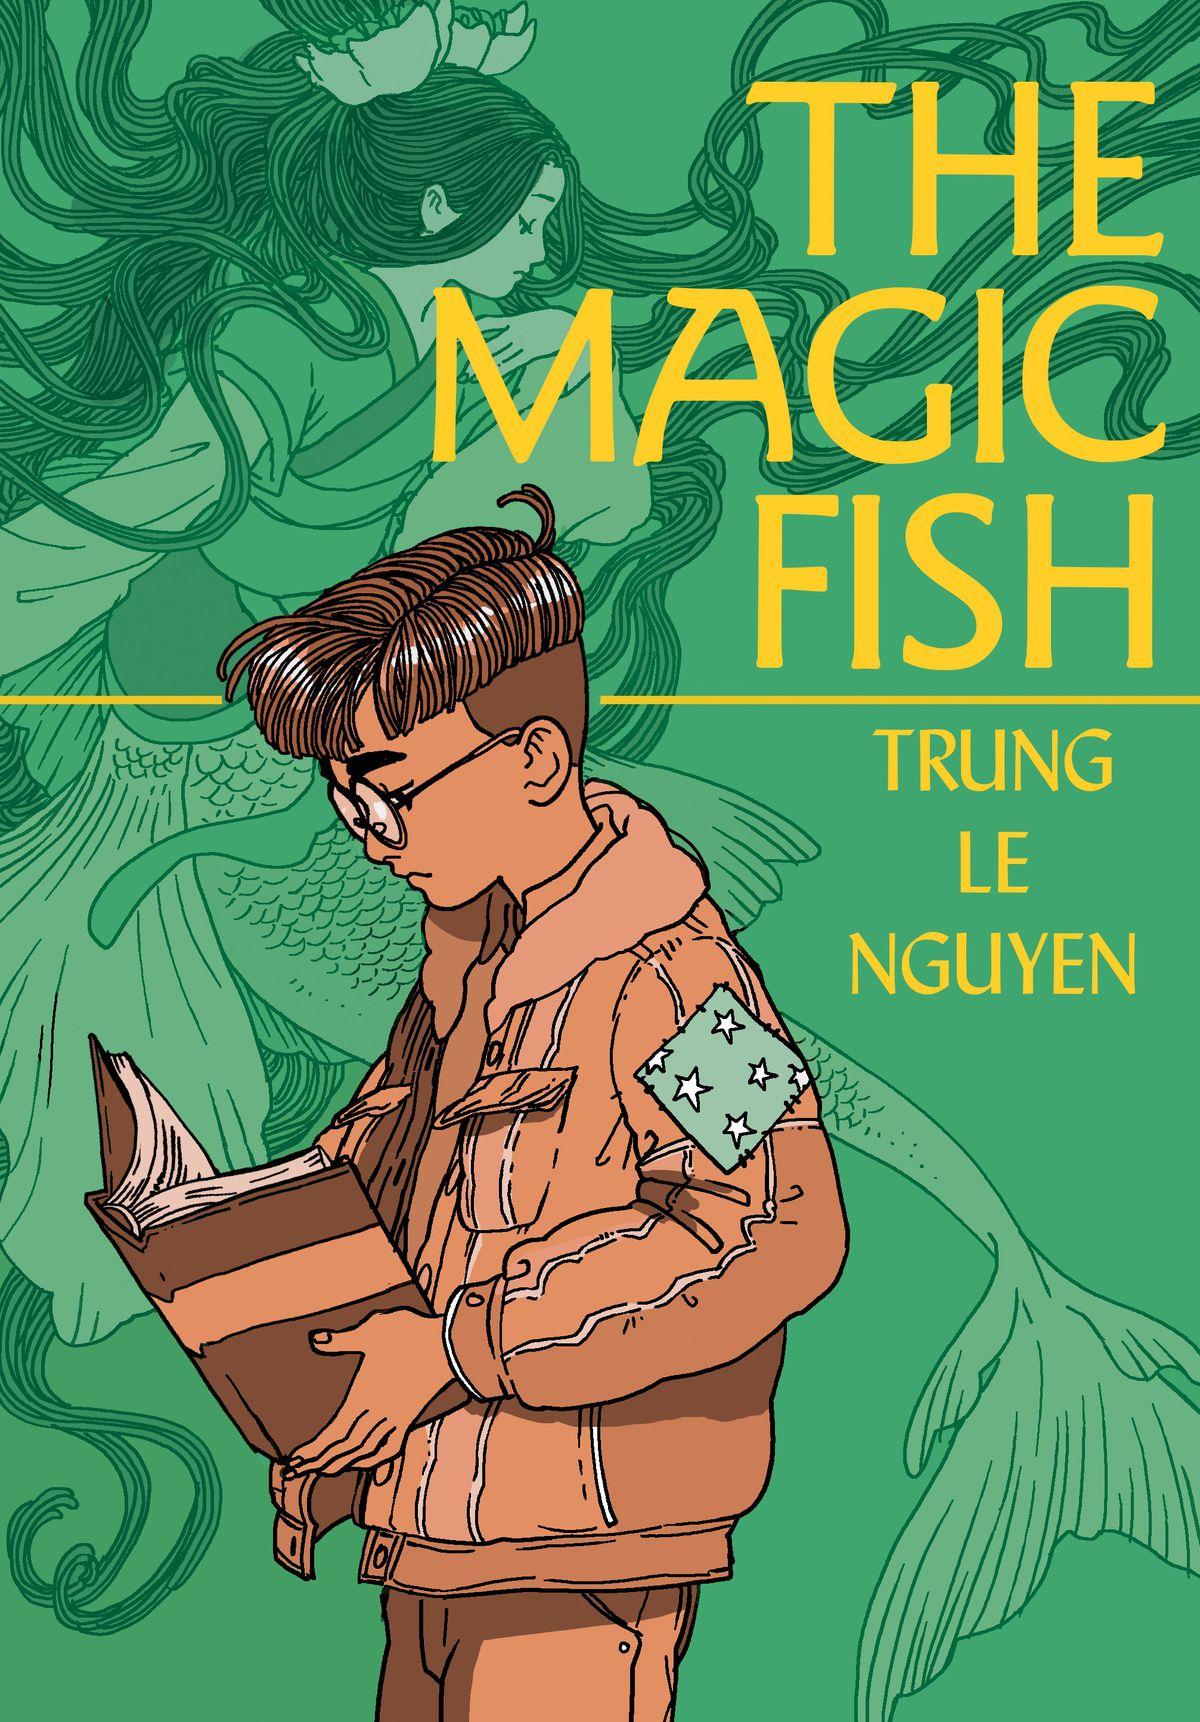 Tiến, a young Vietnamese-American boy, reads a book on the cover of The Magic Fish (2020).